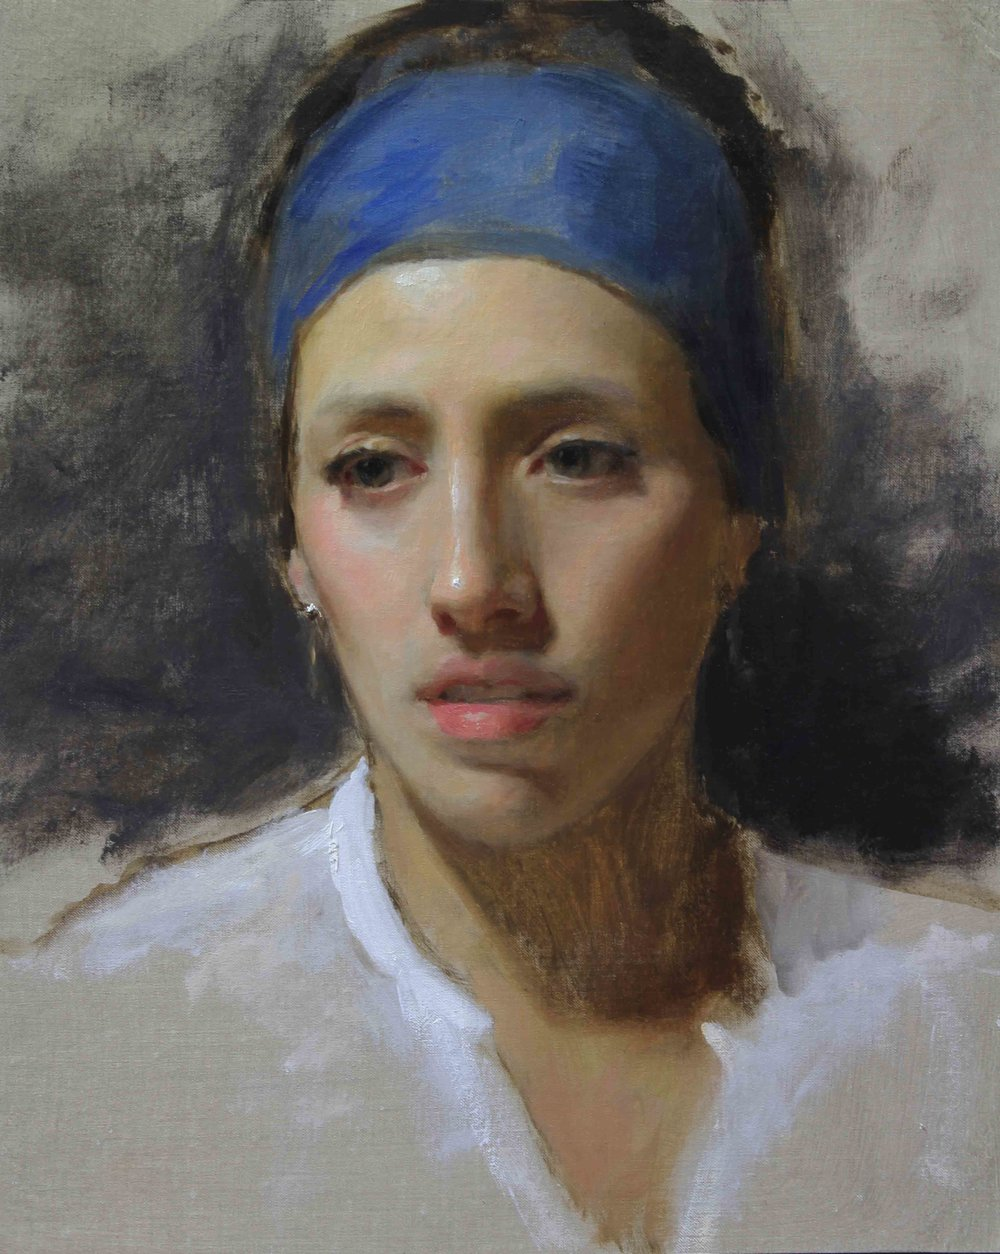 May 26-28 2018 (Memorial Day Weekend) - Raleigh, NC - 3-Day Portrait Painting Workshop